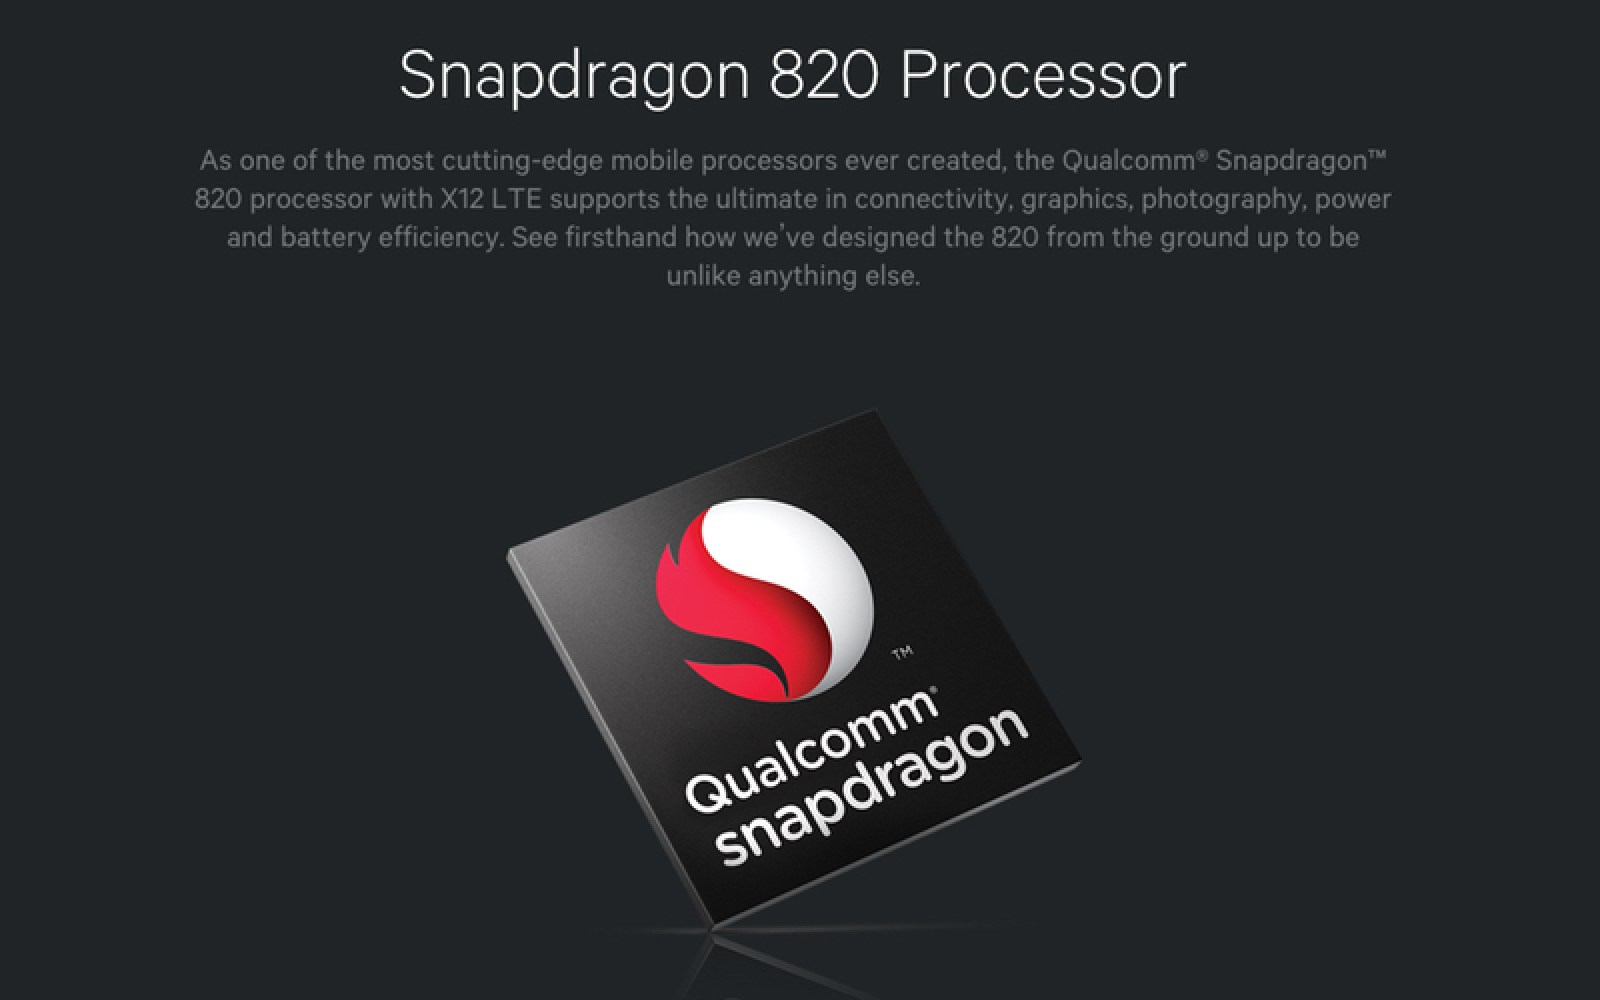 Snapdragon 820 processor officially announced, features Quick-Charge 3.0, Adreno 530 GPU, 600Mbps LTE cat. 12, more